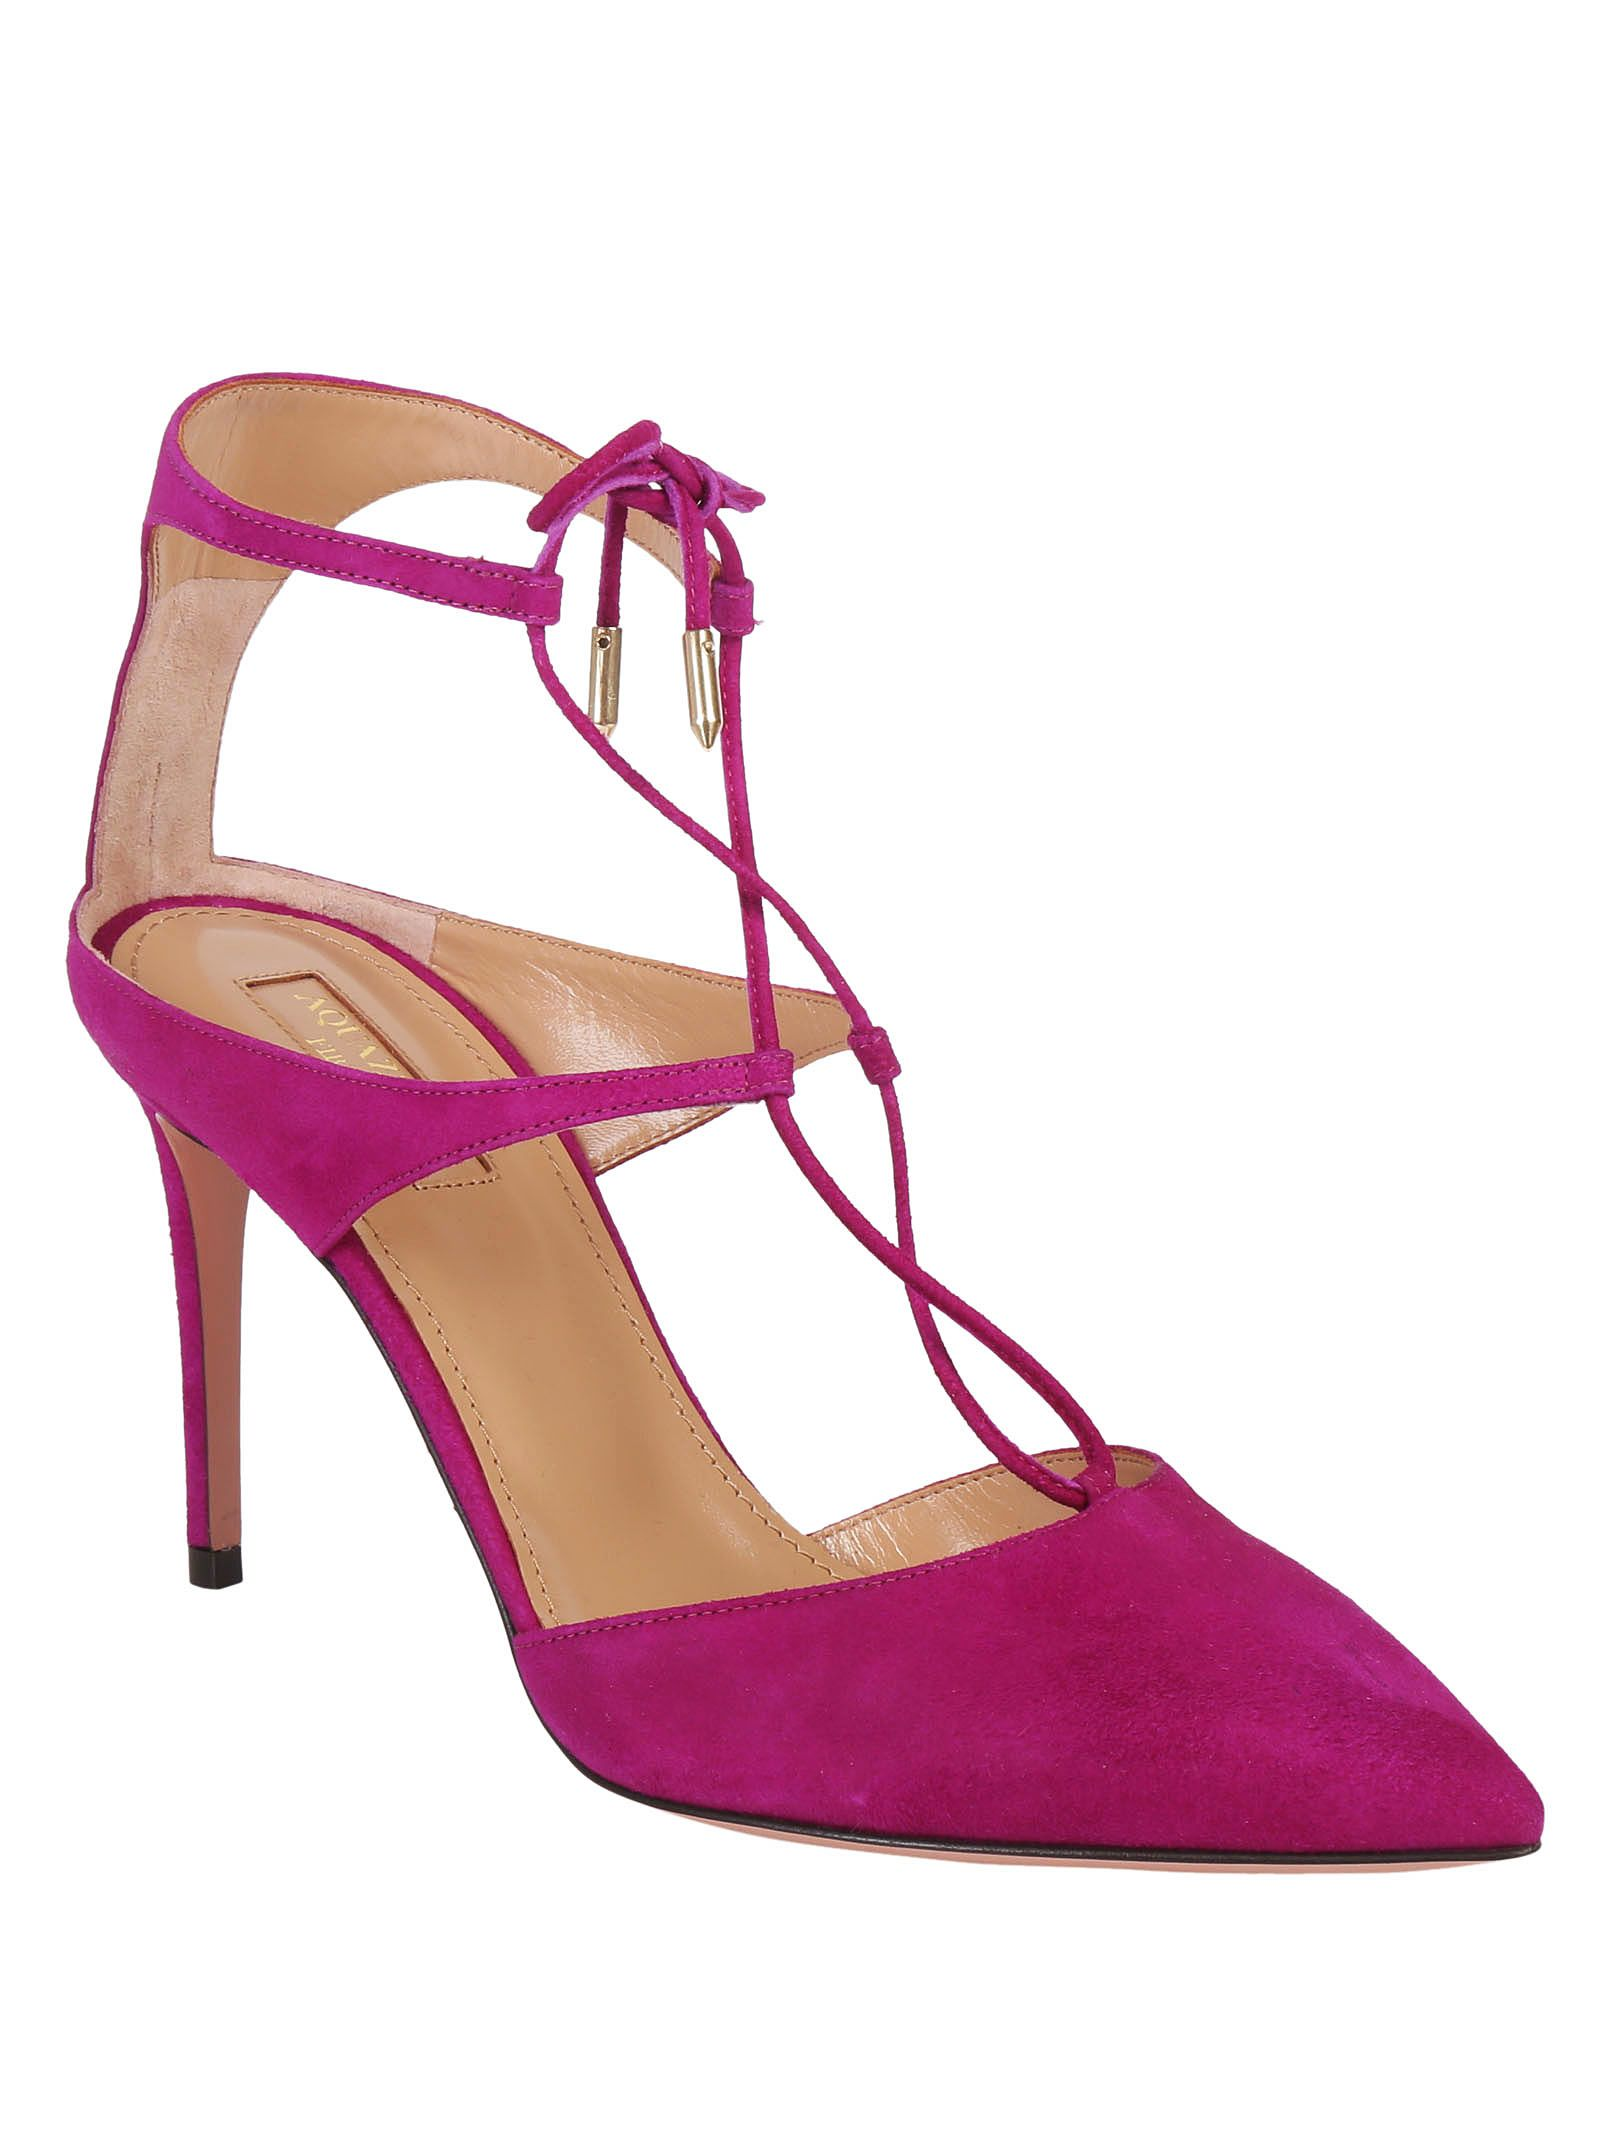 Manhattan 85 pumps - Pink & Purple Aquazzura 7MGQa9ny8b